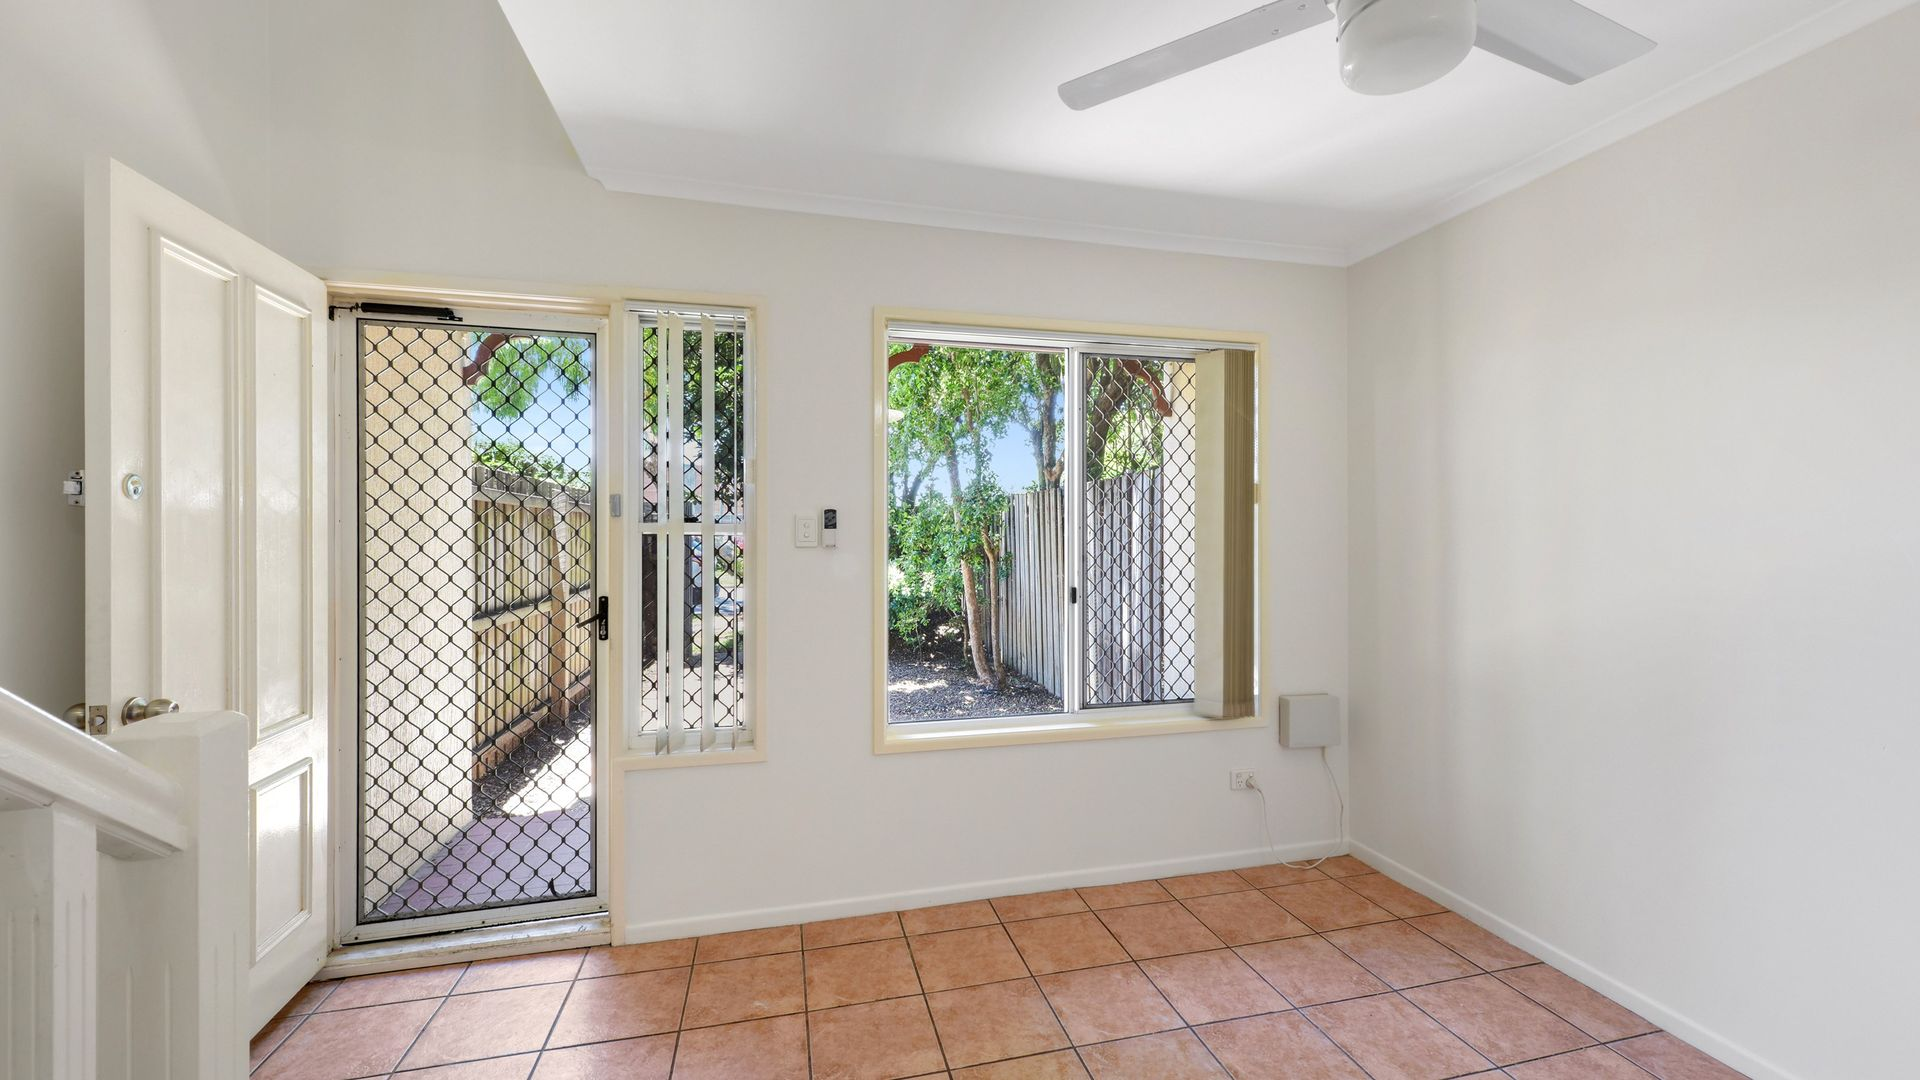 5/306 Melton Road, Northgate QLD 4013, Image 2